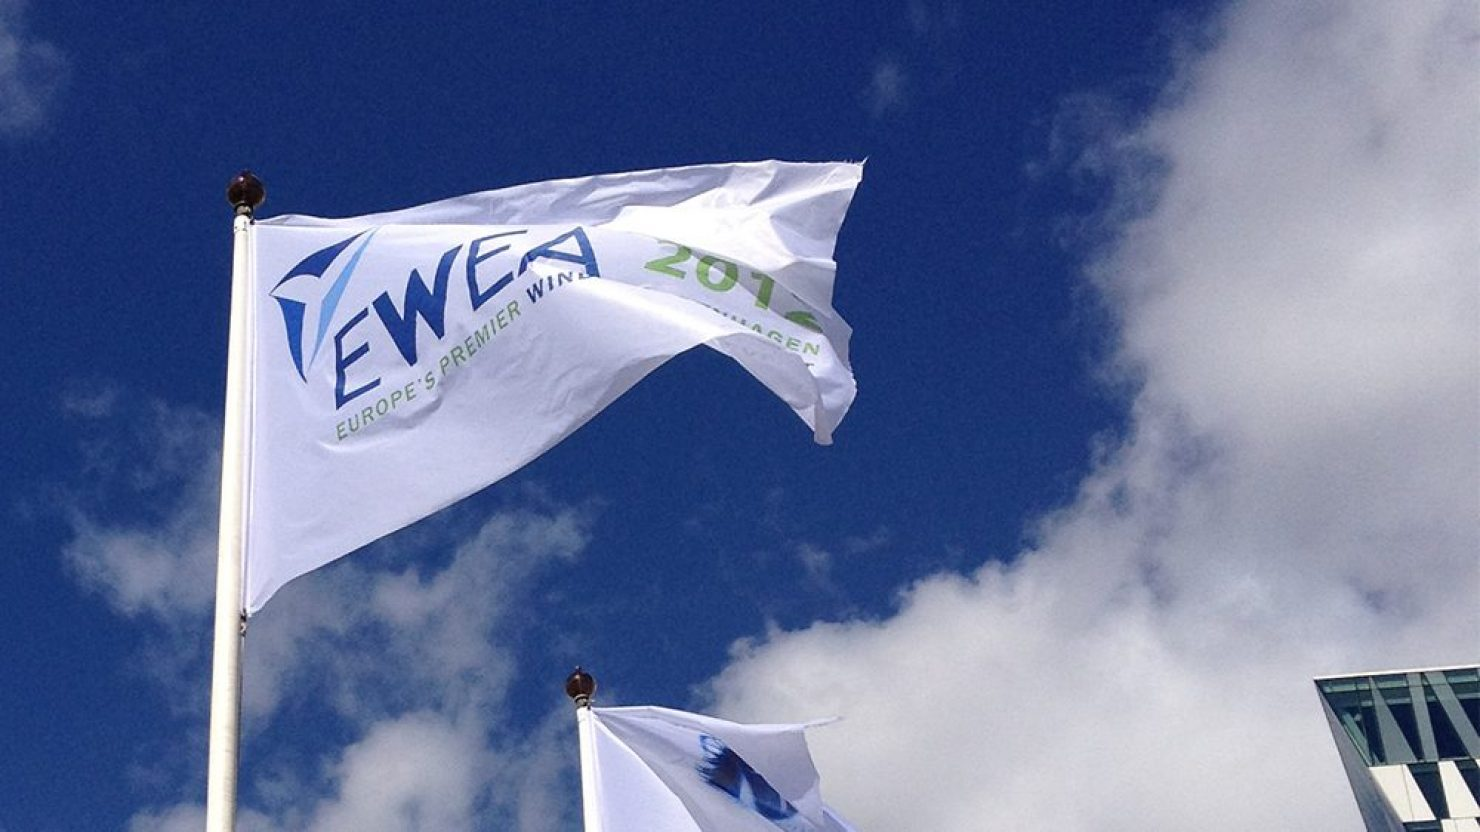 event flag branding design at ewea 2012